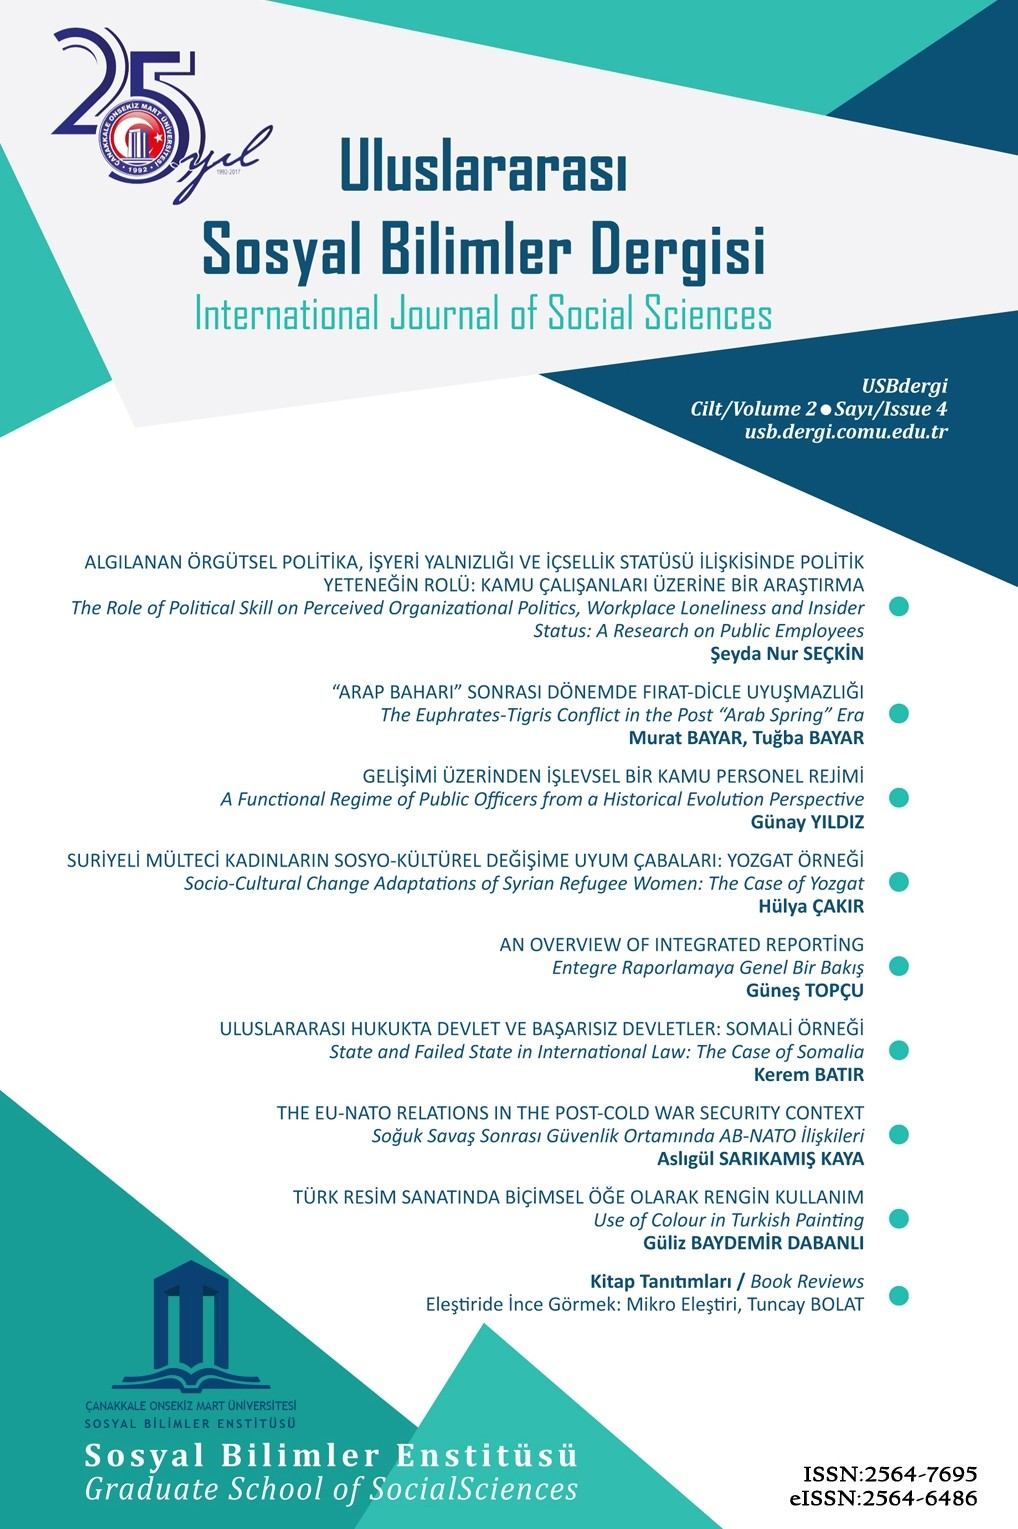 Çanakkale Onsekiz Mart University International Journal of Social Sciences